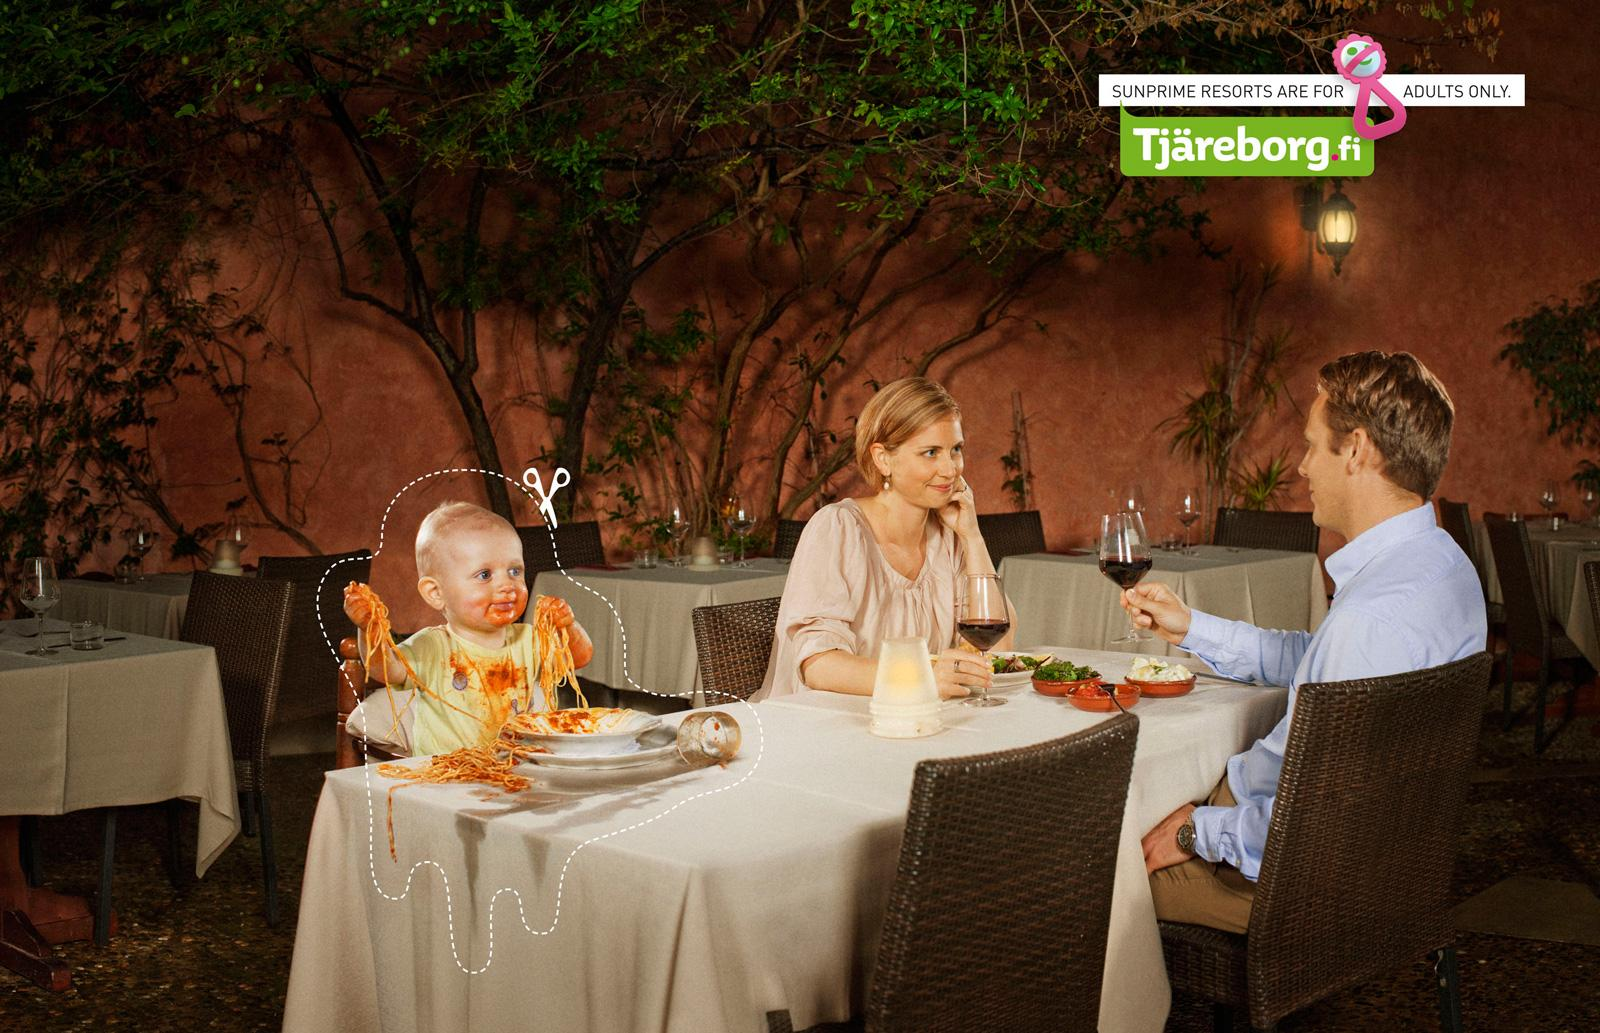 Tjäreborg Print Ad -  No kids, Dinner